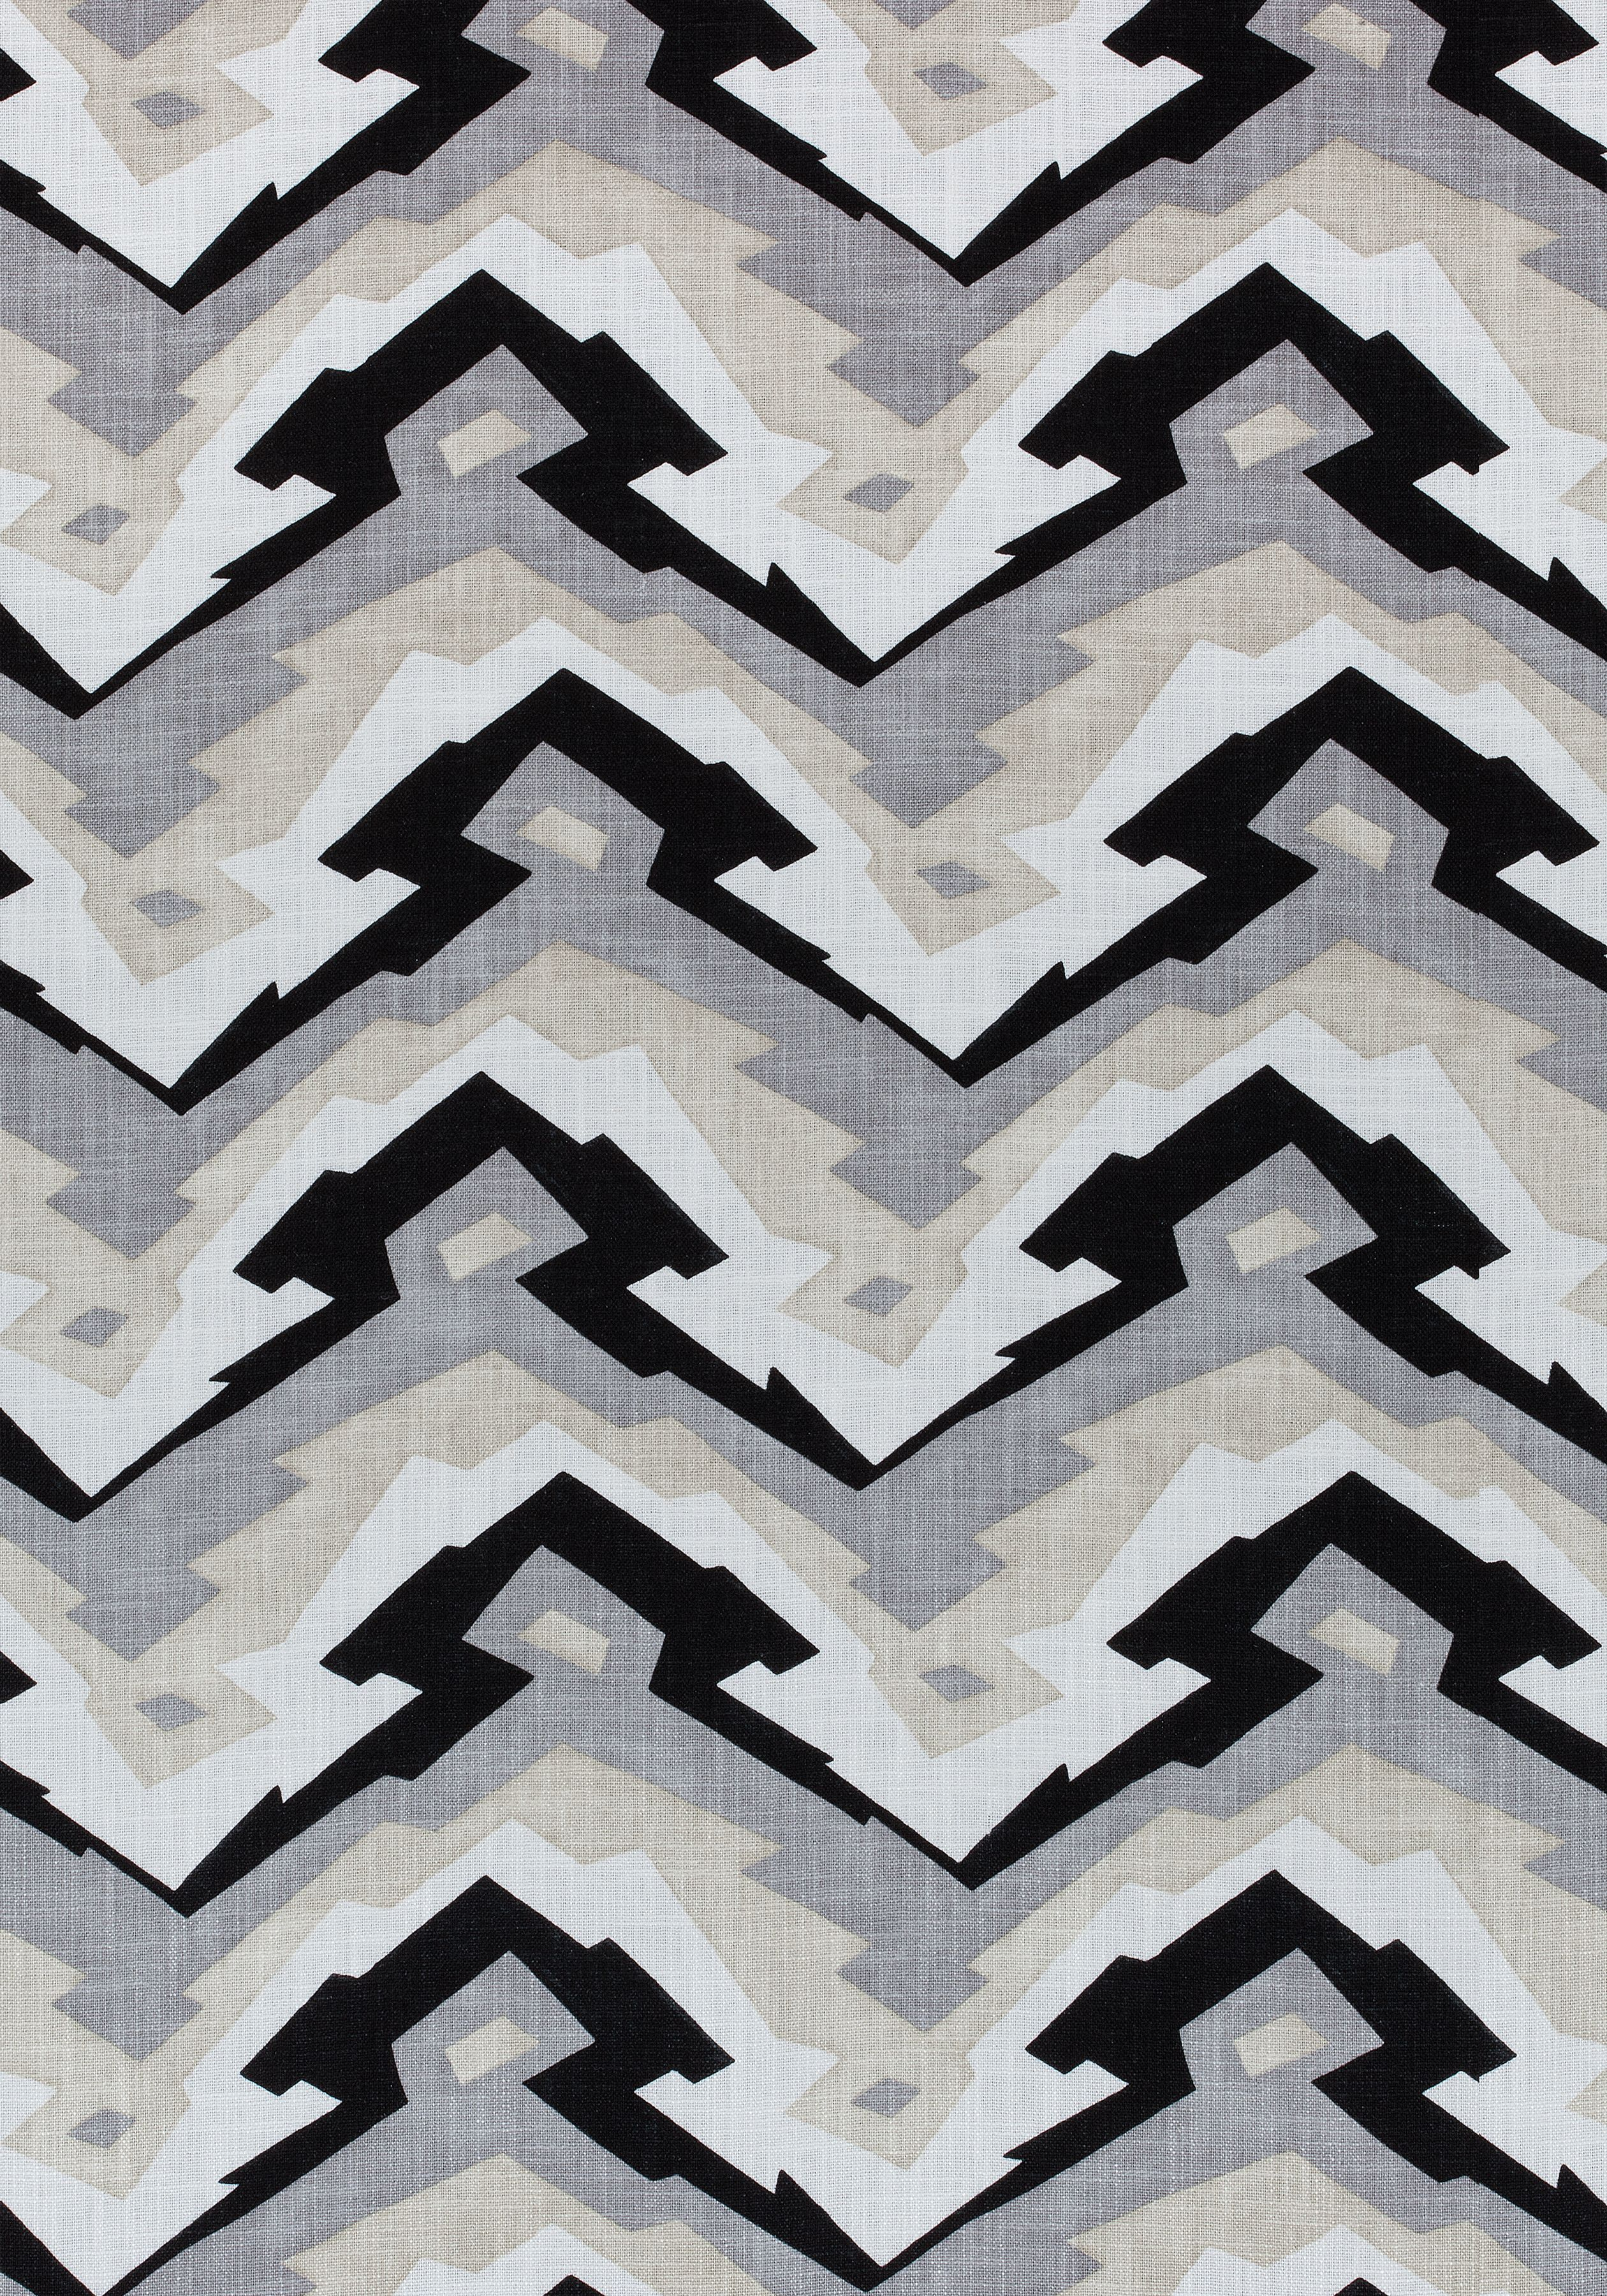 DECO MOUNTAIN Black and Grey F Collection Summer House from